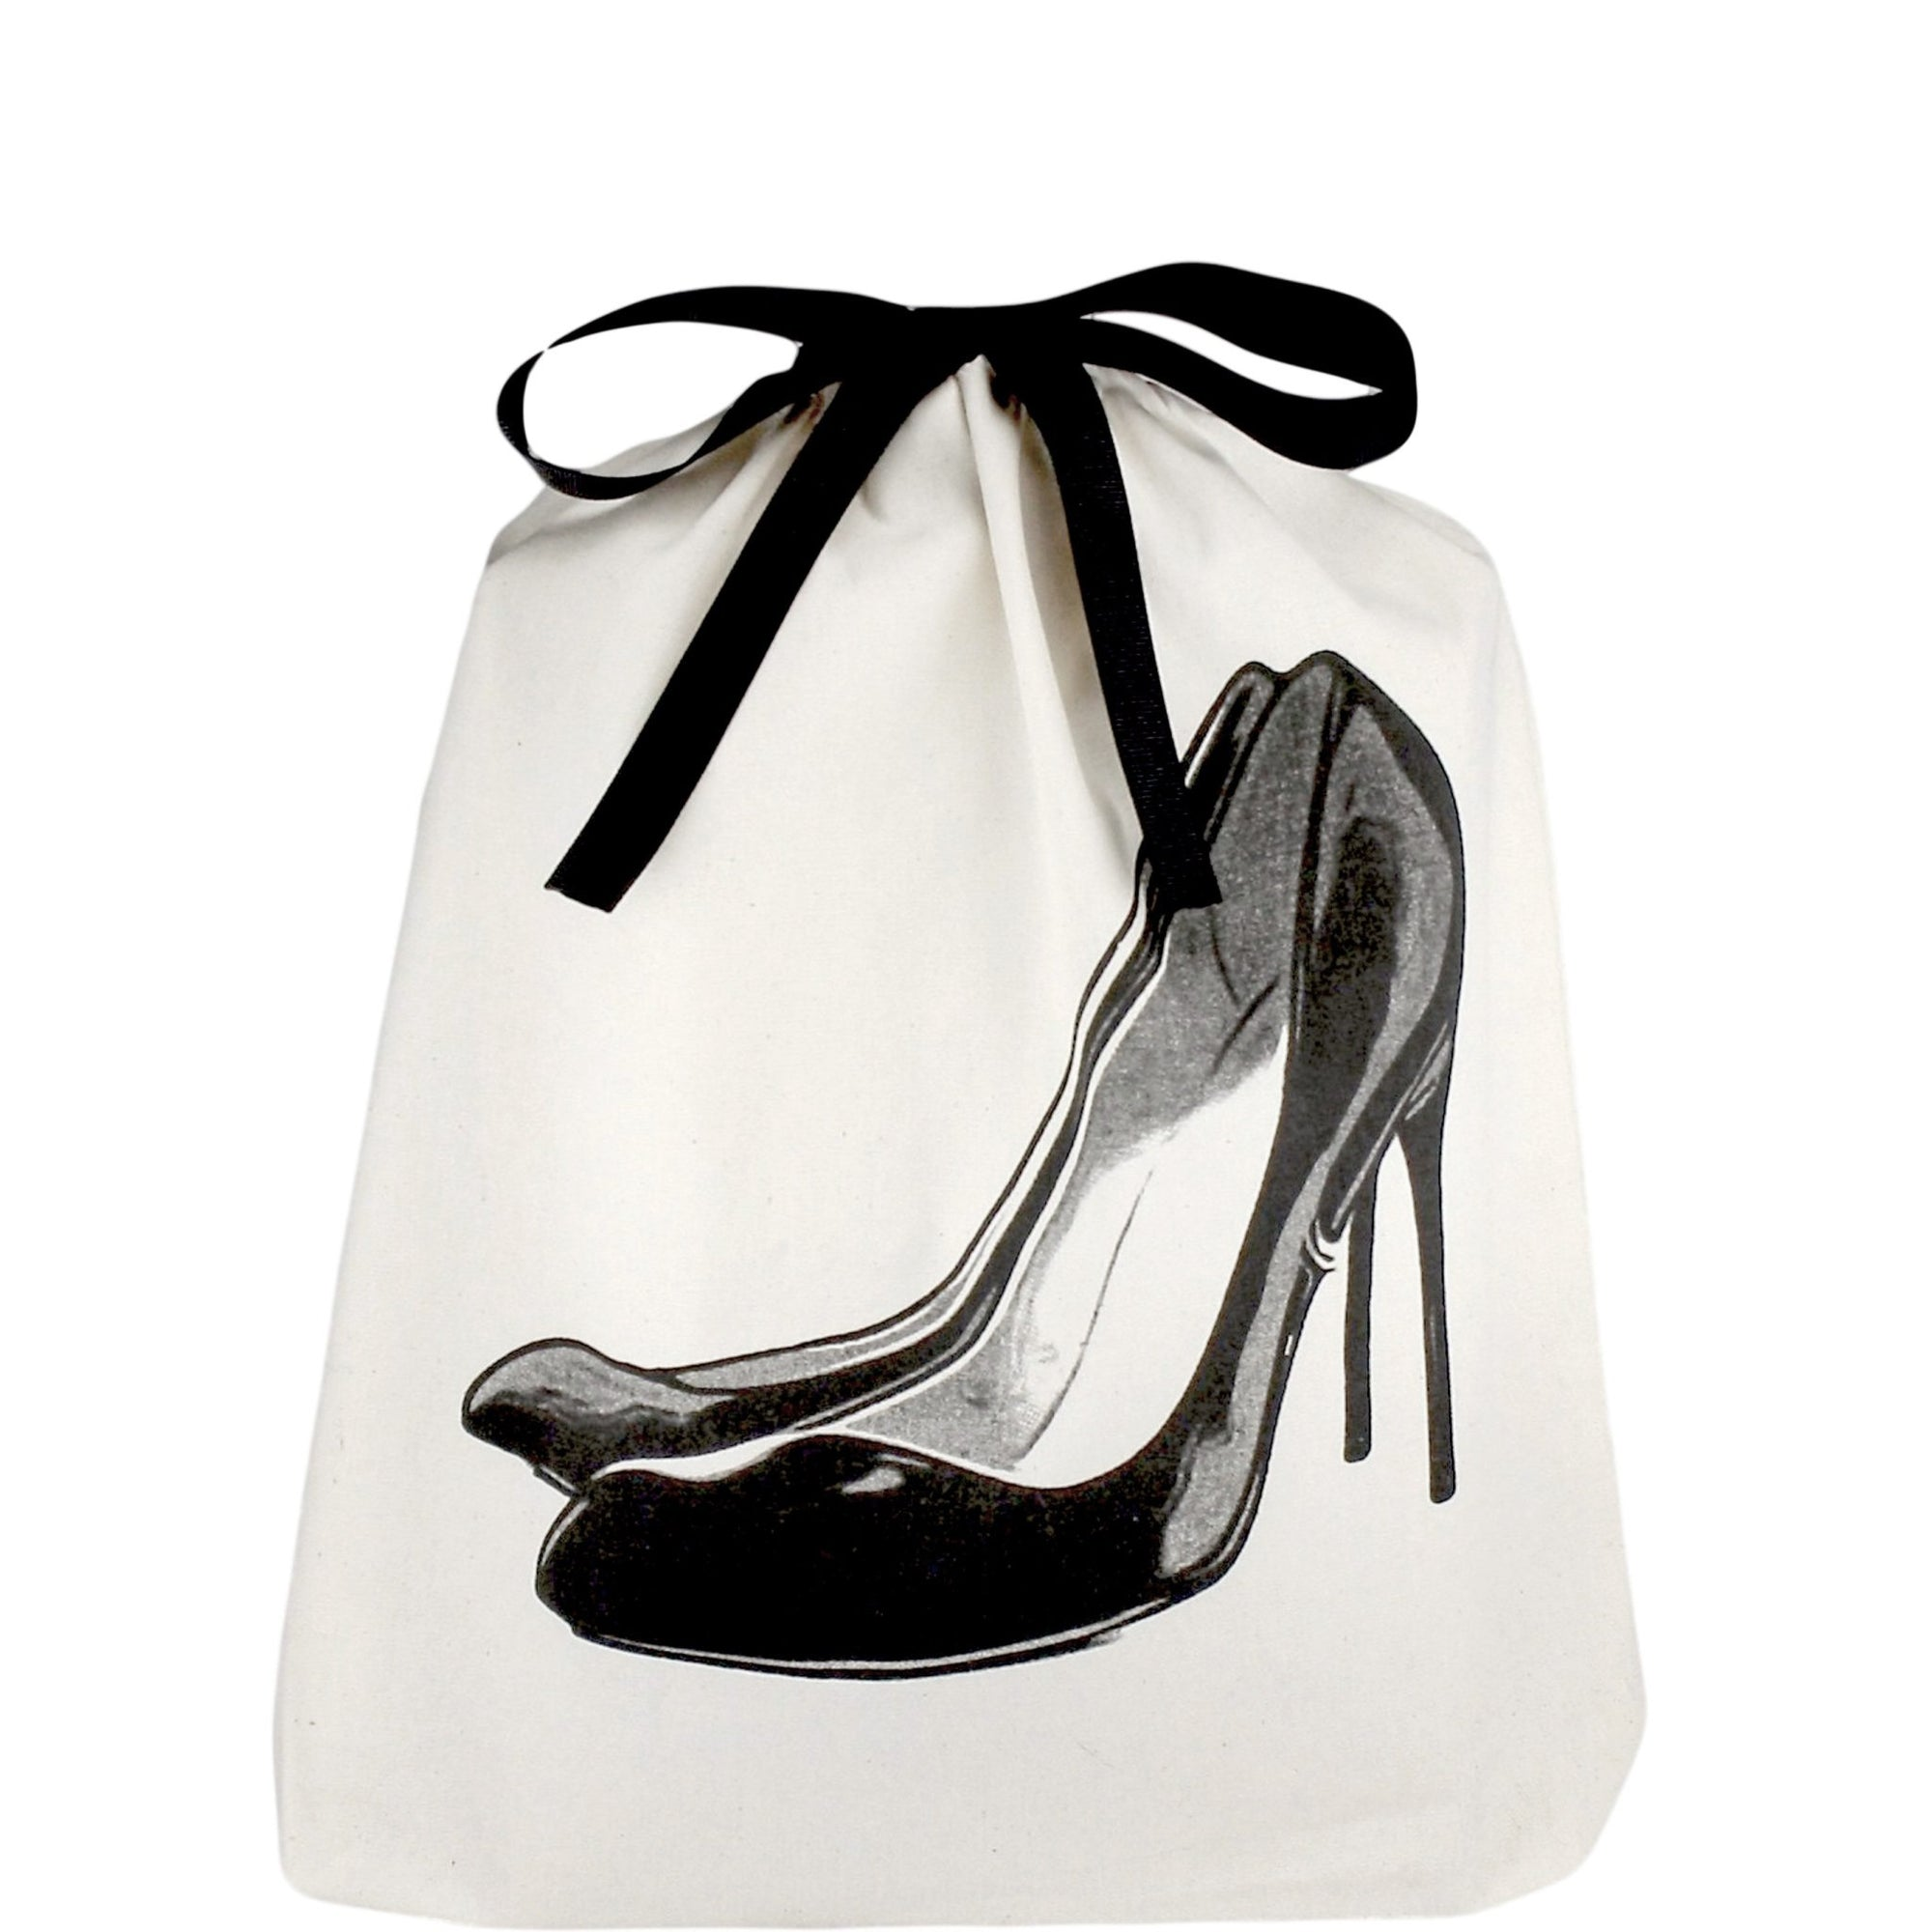 Shoe bag with black pumps printed on the front.